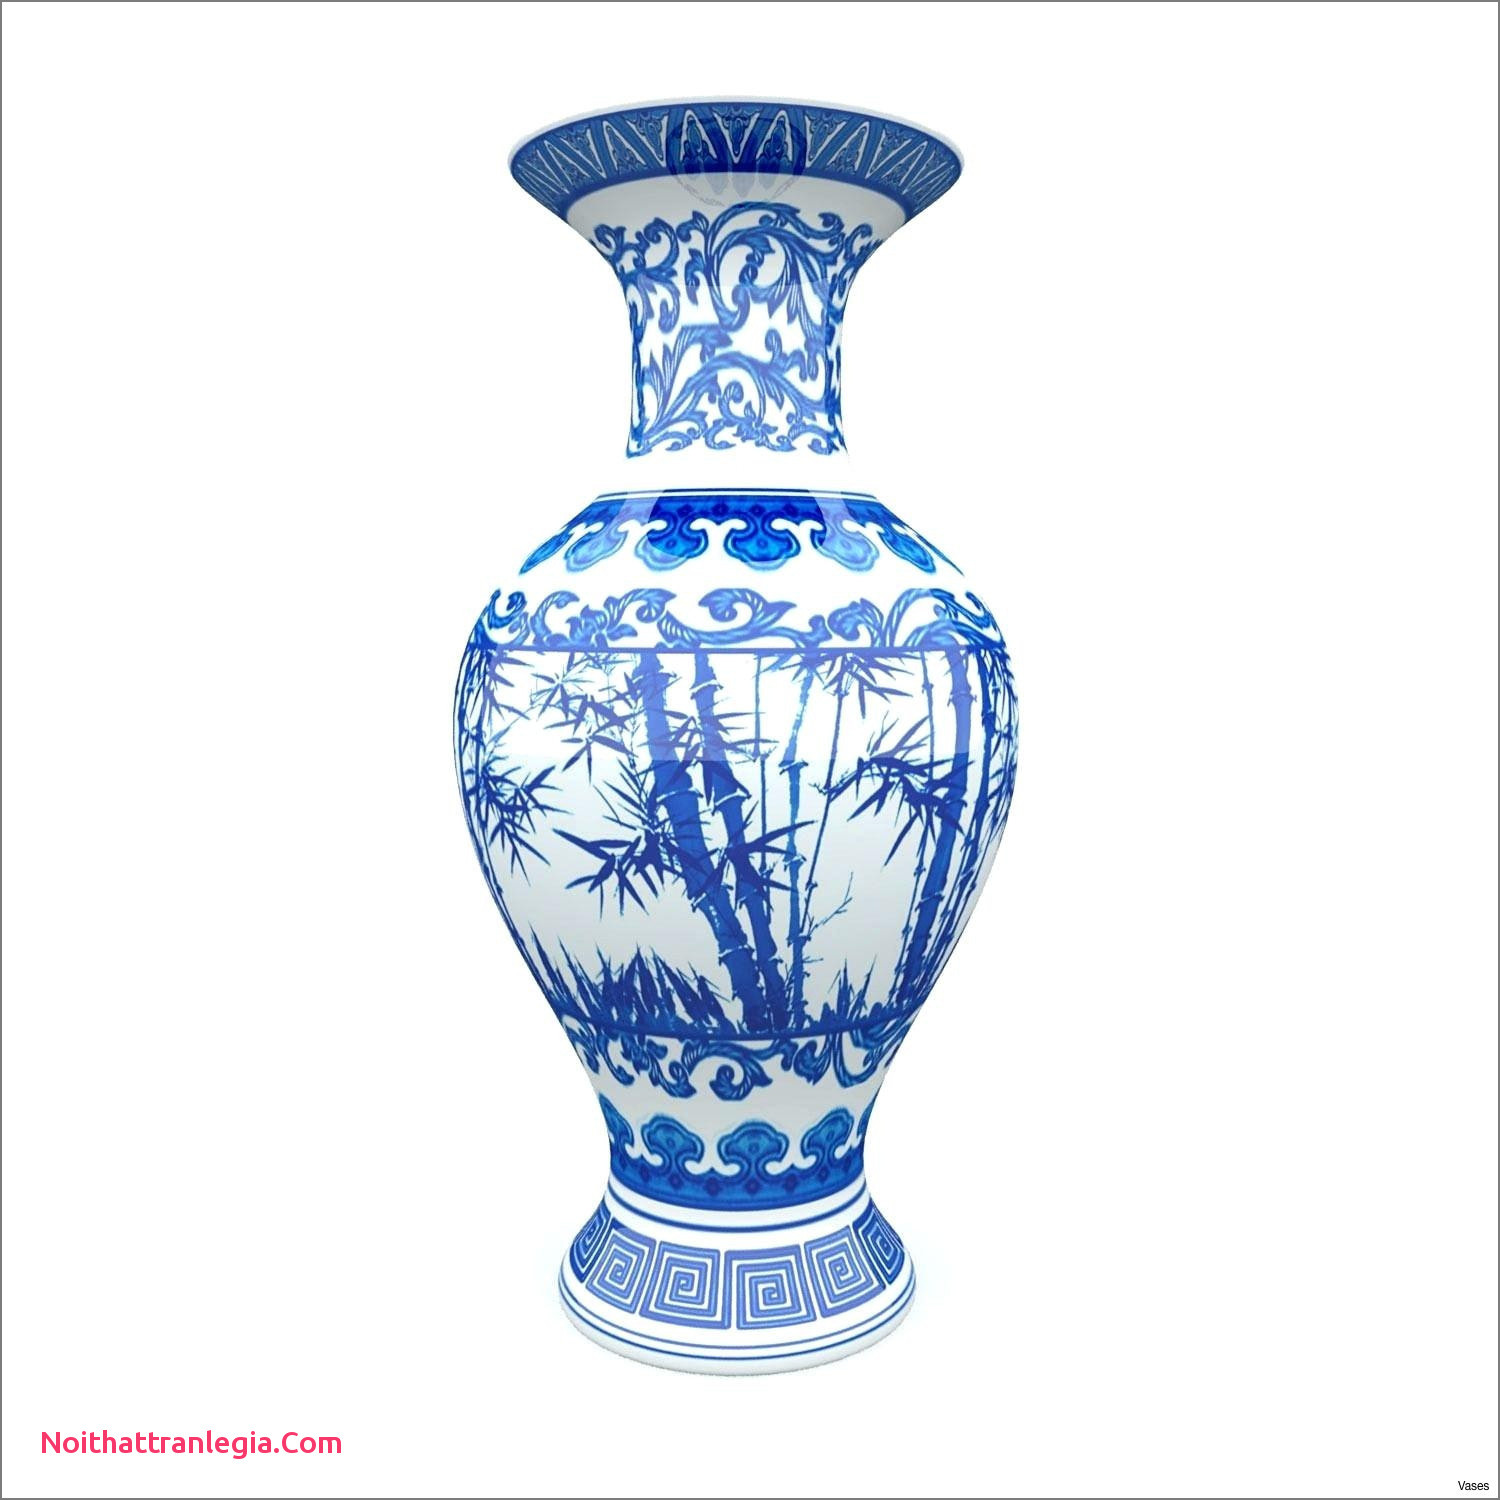 Blue Ceramic Vases Sale Of 20 Chinese Antique Vase Noithattranlegia Vases Design within Antique Table Lamp Markings New Chinese Dynasty Vase Markings Lamp Base Ceramic Art Historyh Vases